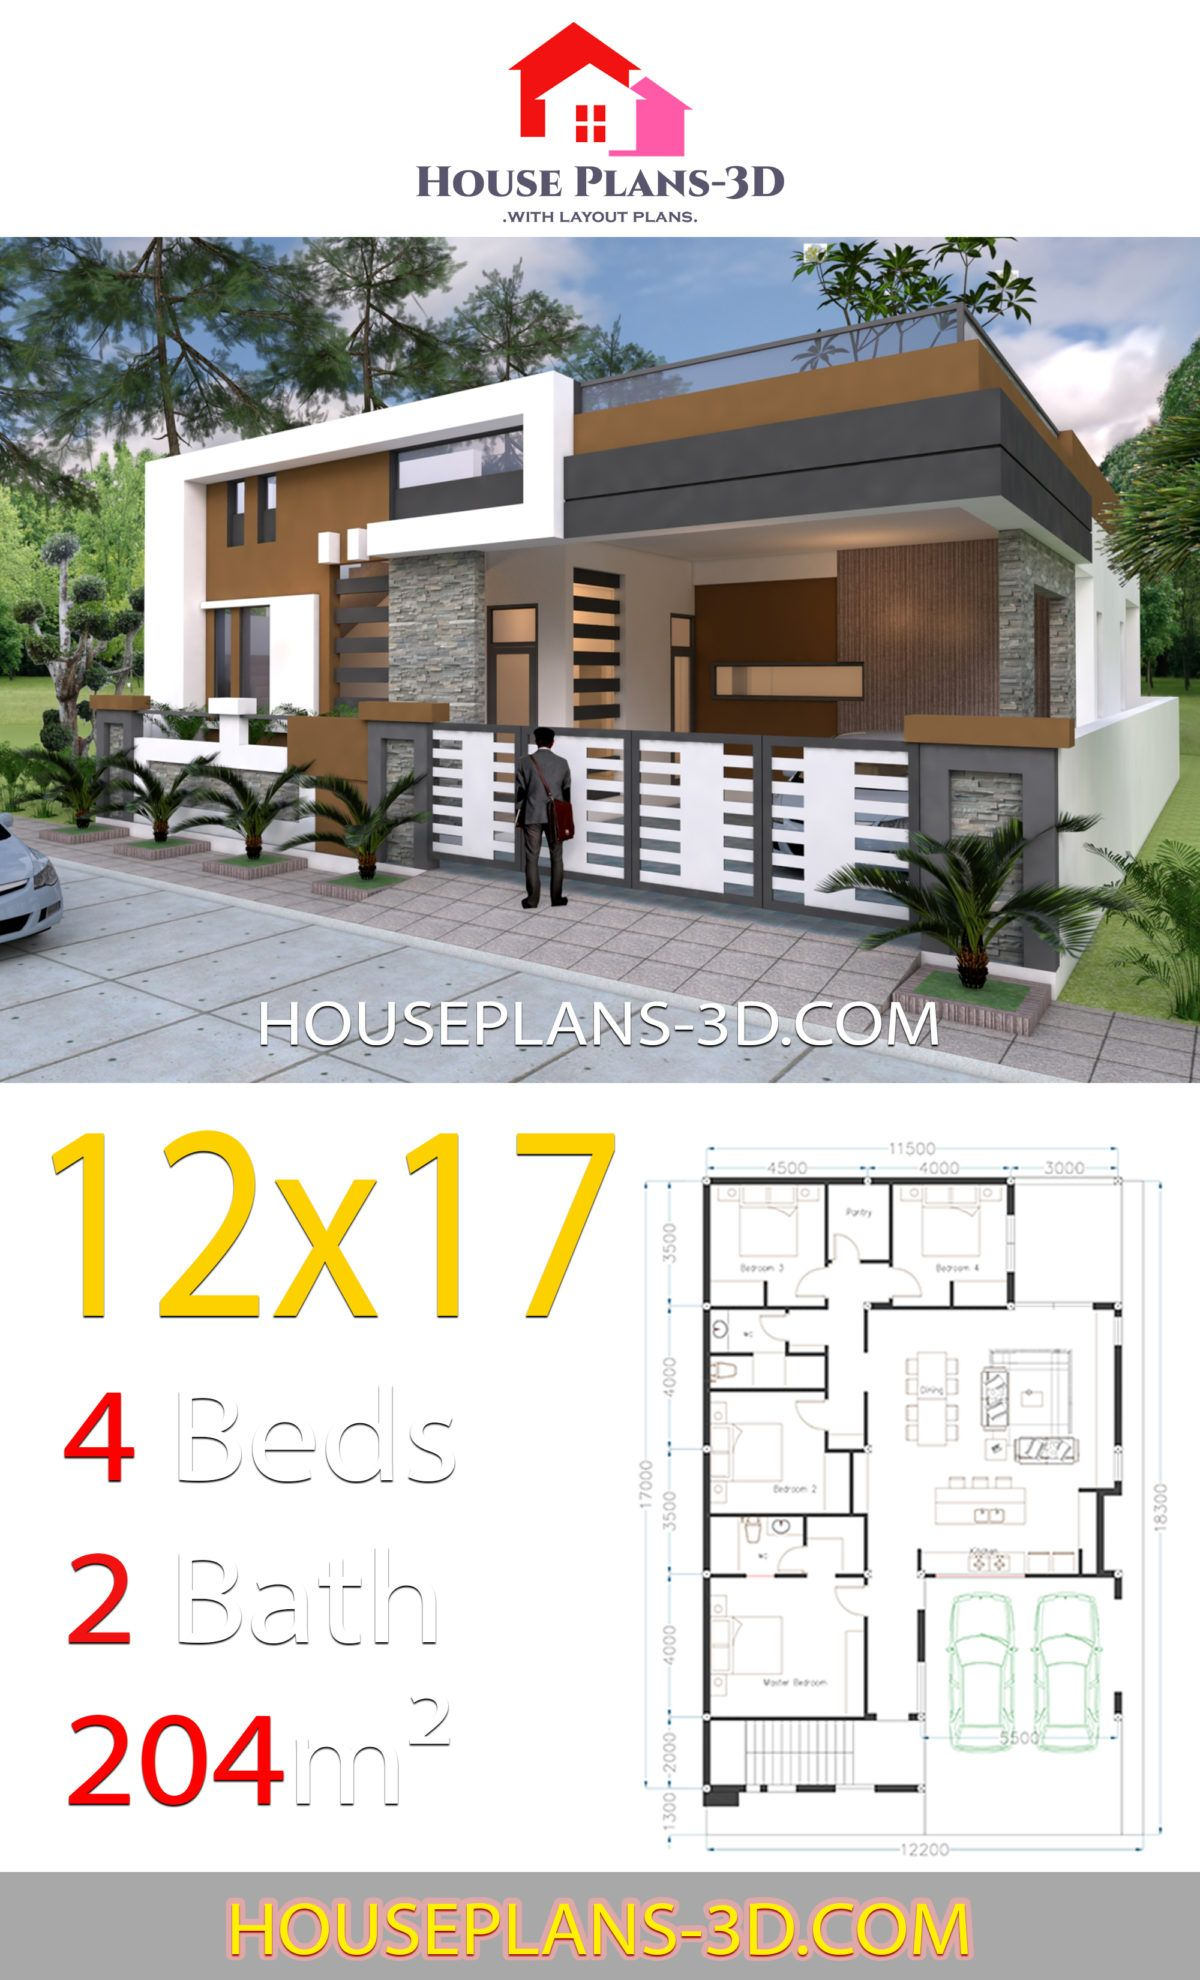 House Design 12x17 With 4 Bedrooms Terrace Roof House Plans 3d Single Floor House Design House Plans Bungalow House Plans